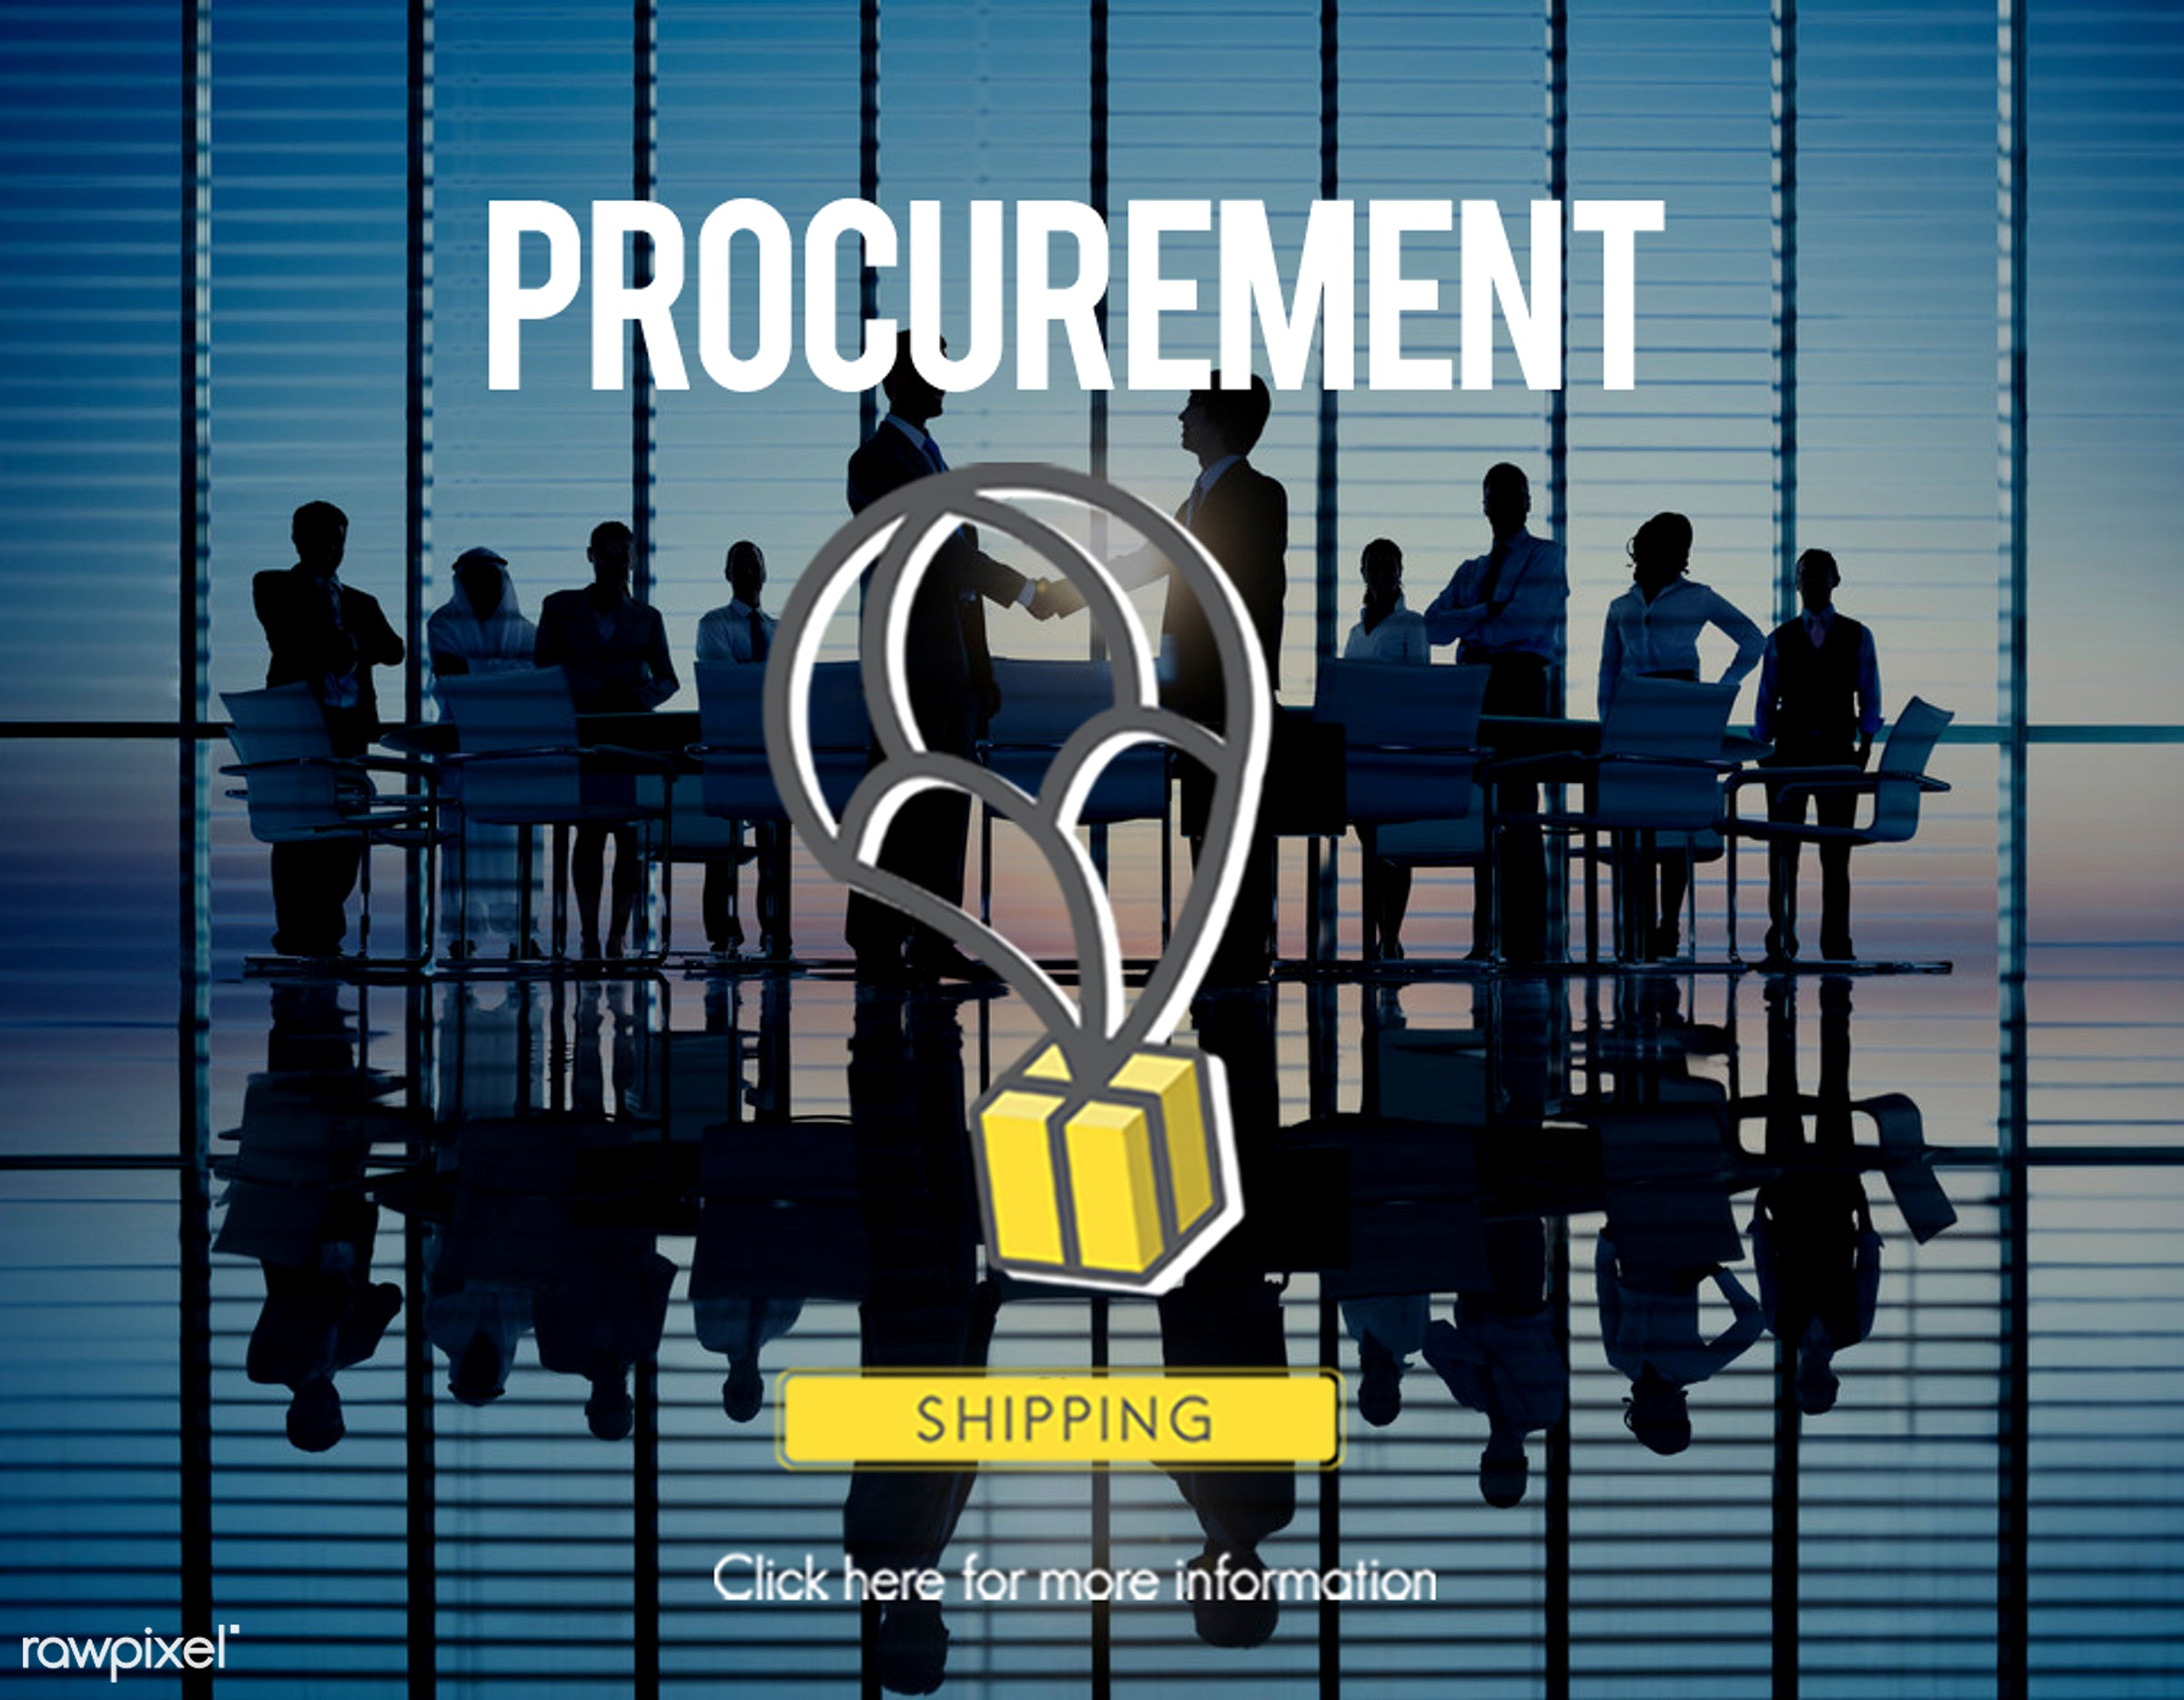 product, agreement, business, cargo, colleagues, commerce, commodity, conference, corporate, courier, delivery, distribution...